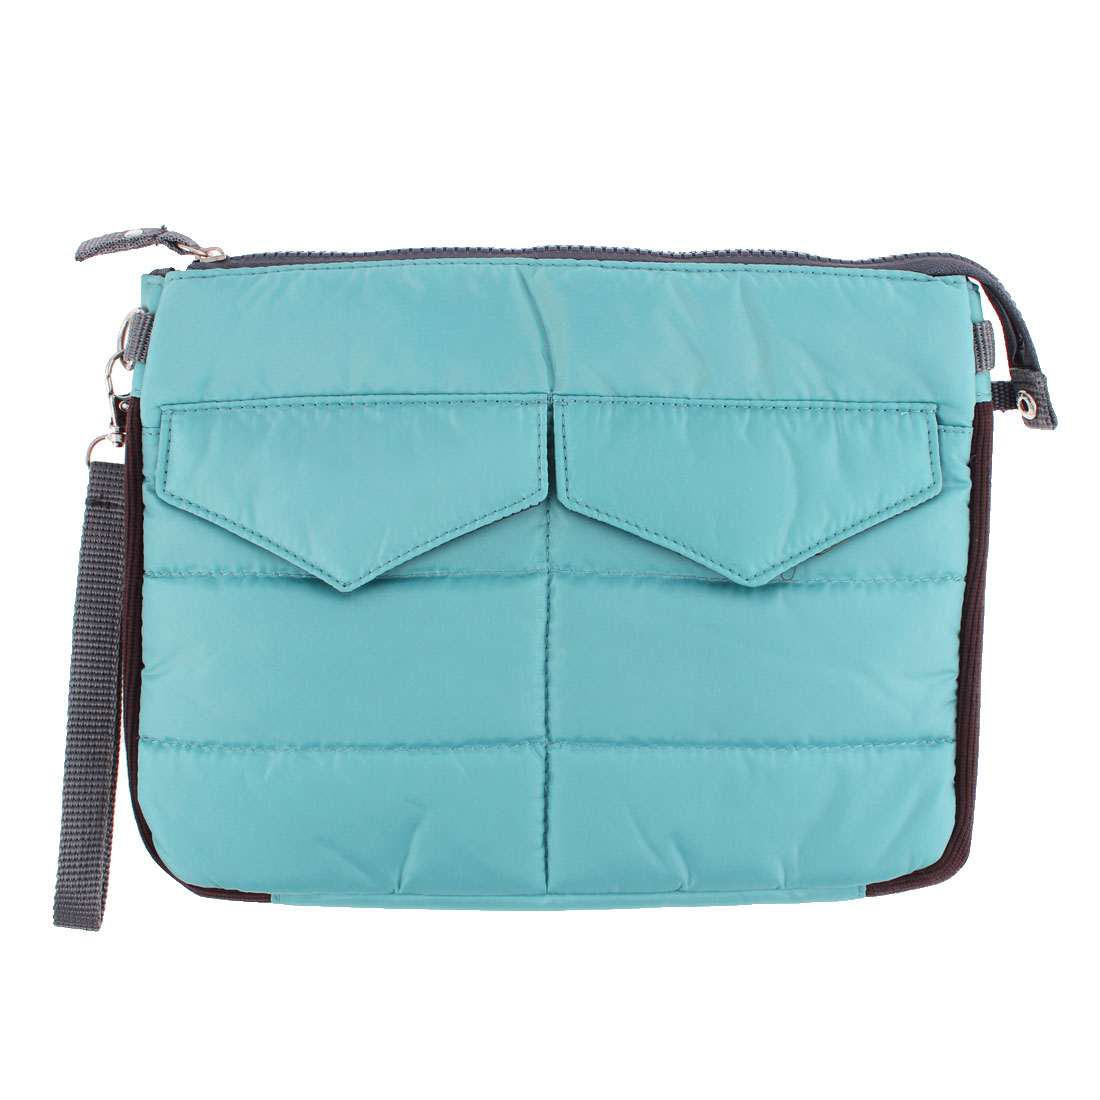 Universal Cotton Blends Bag Travel Case Protector Blue for iPad Tablet